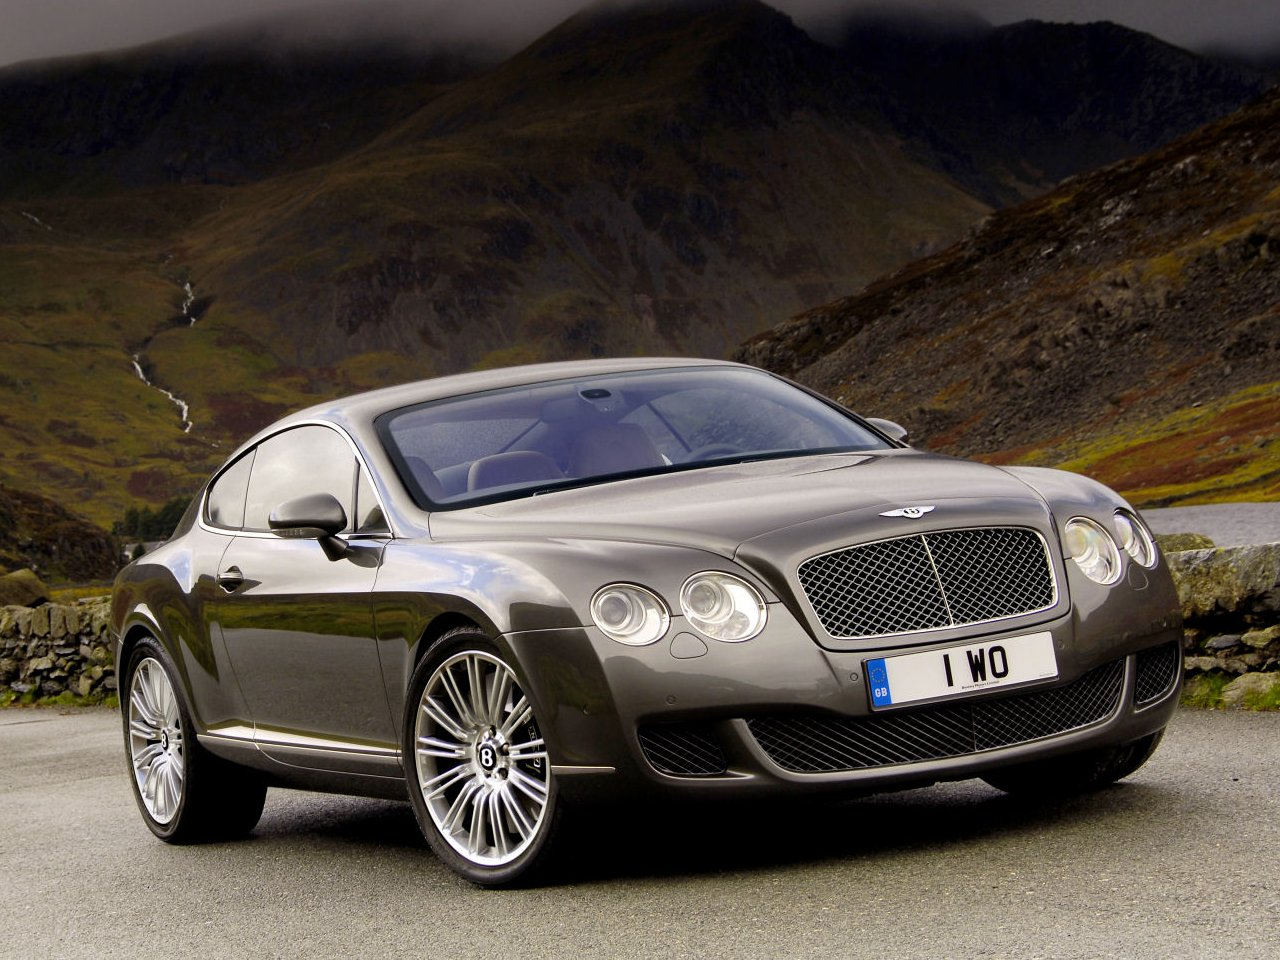 2010 Bentley Continental GTC Inside